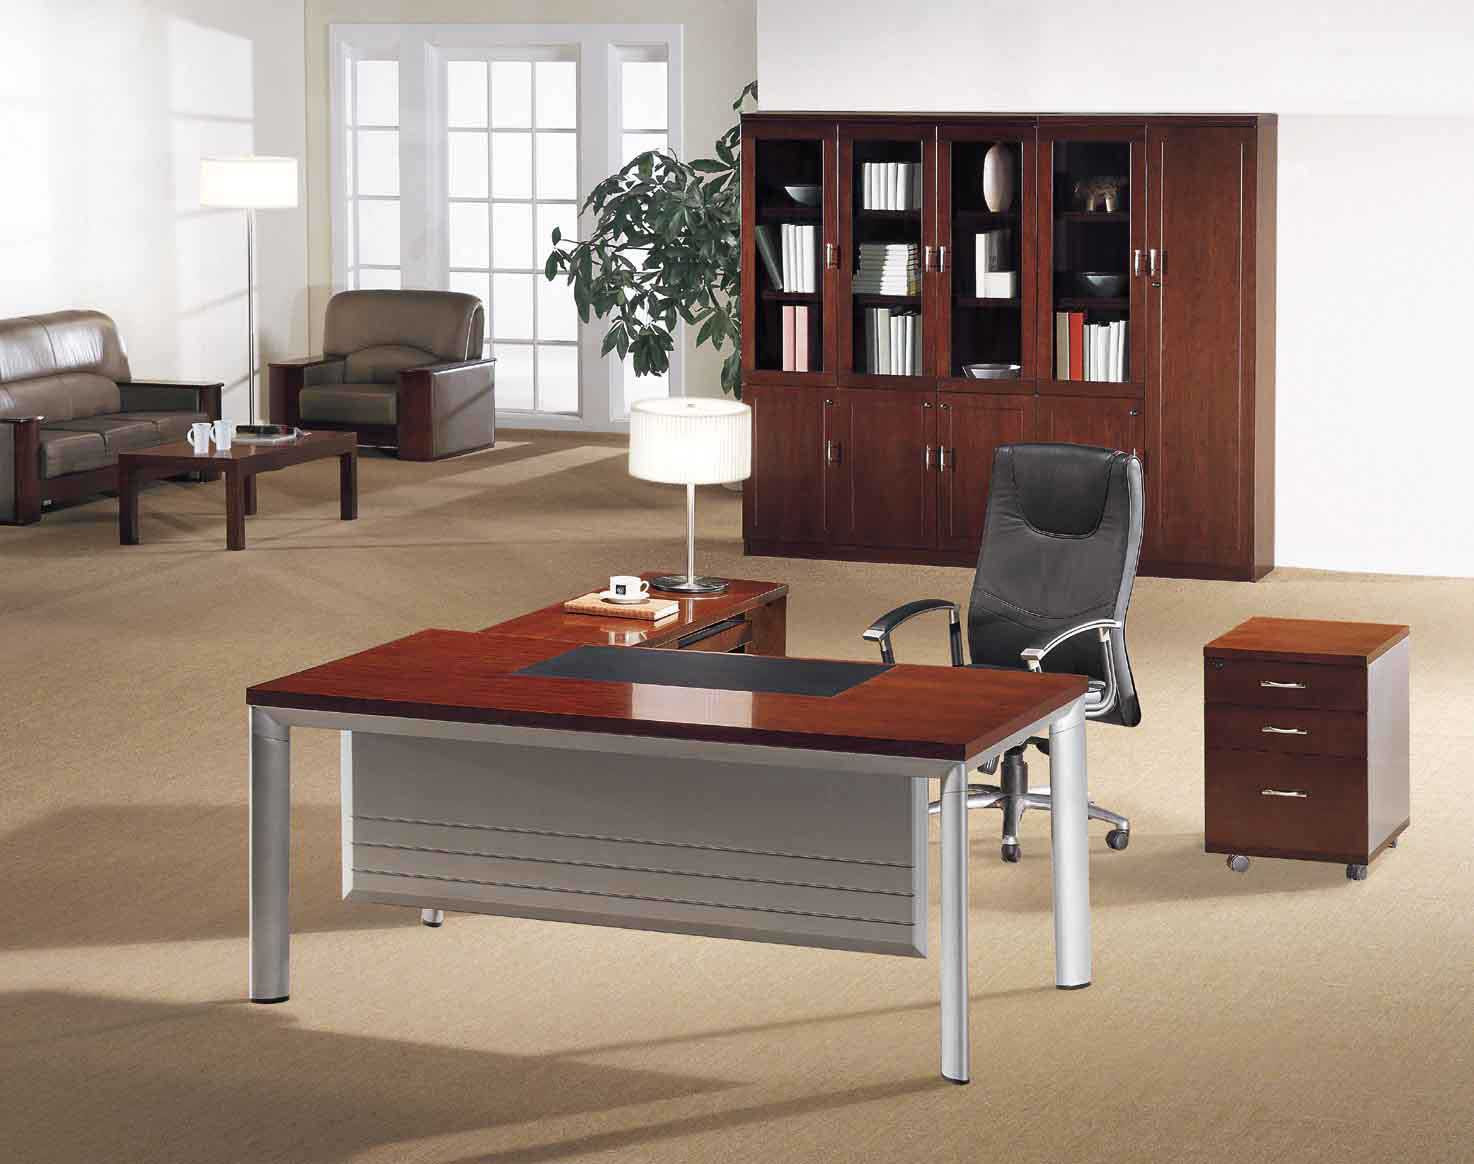 Check spelling or type a new query. Decorating Your Executive Office - CozyHouze.com